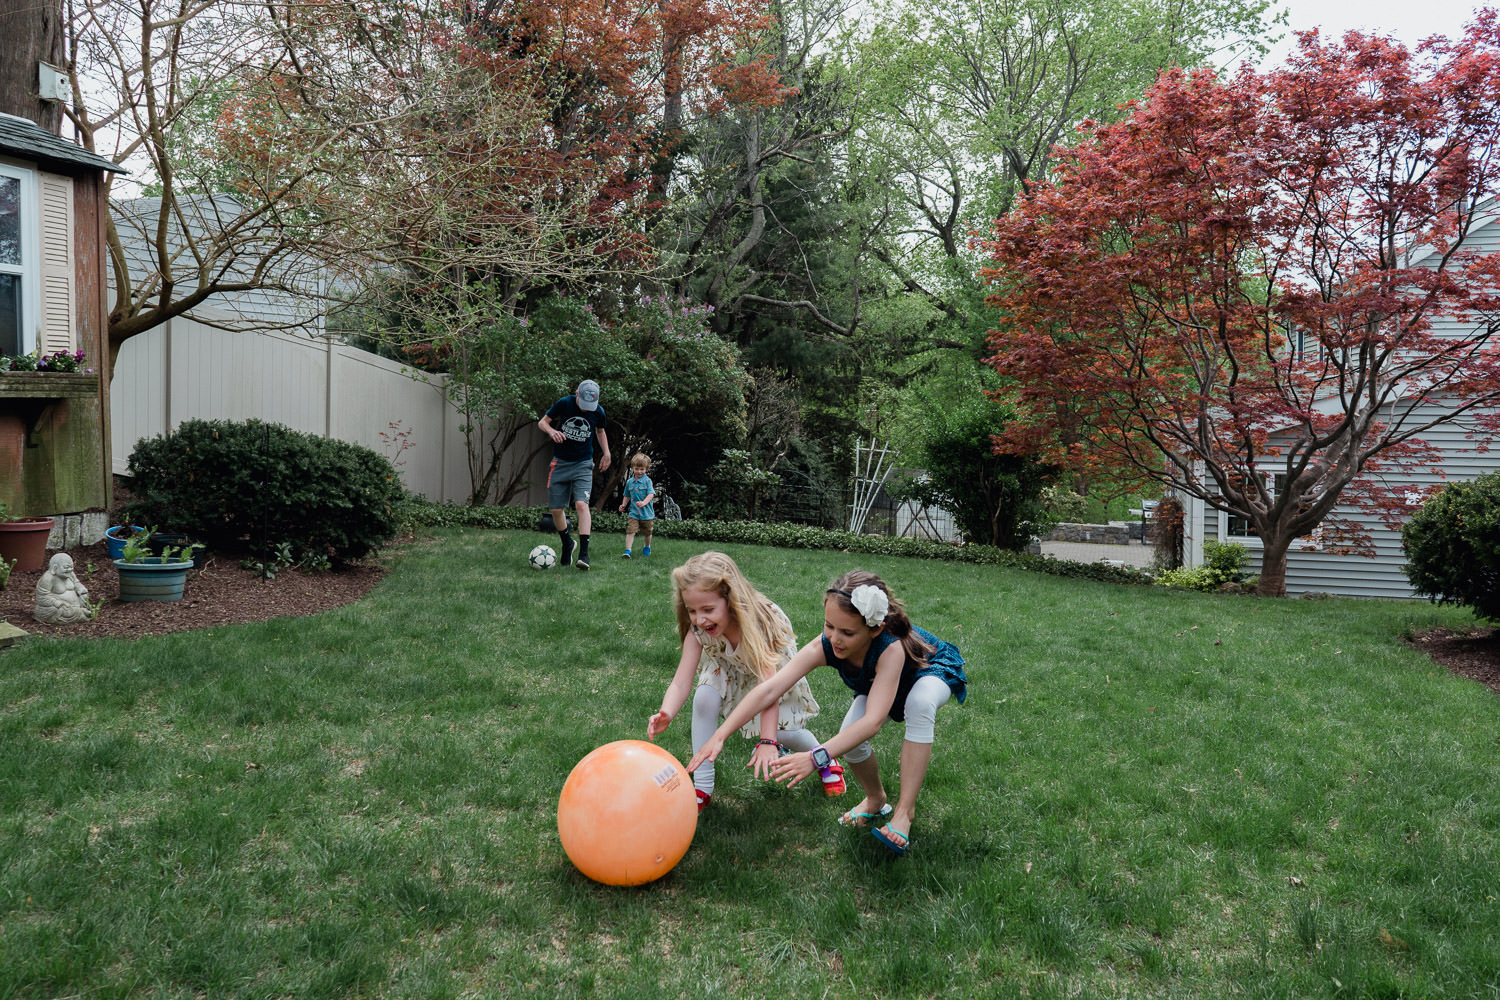 Two little girls chase after an orange ball.